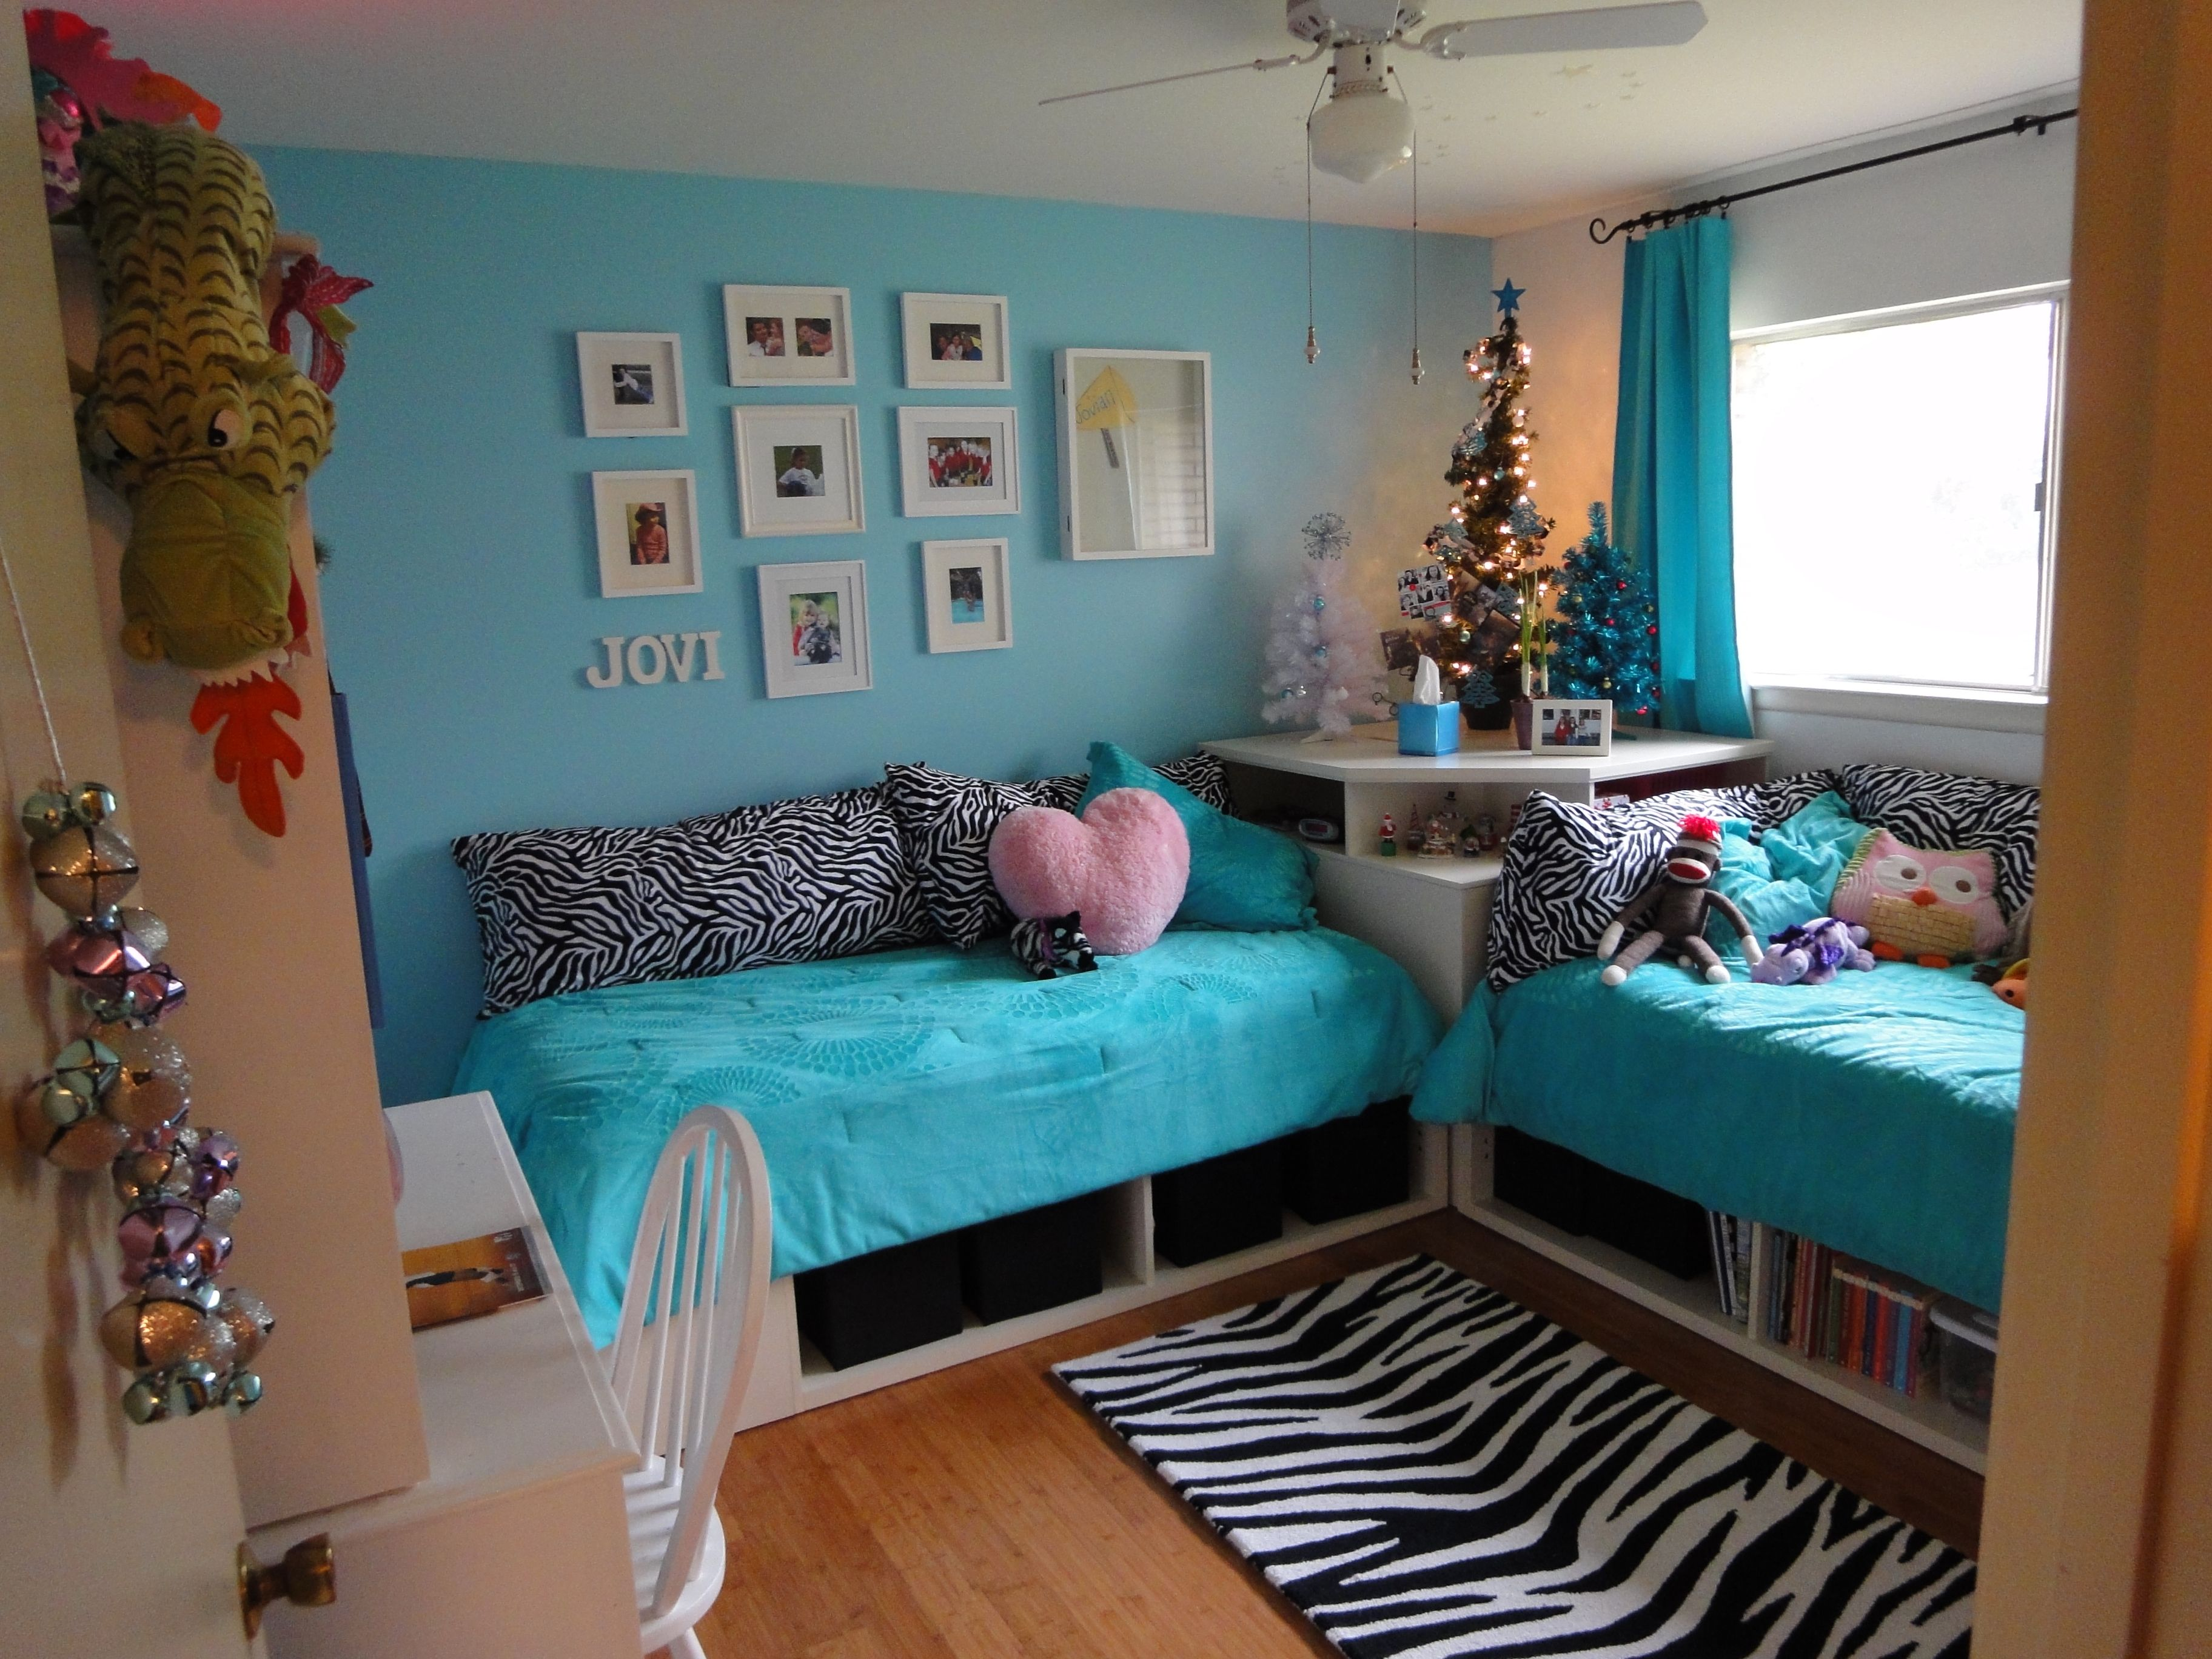 Double beds for teenage girls - One Bed Under Window One Under 2 Small Windows Maybe With Pull Out Underneath